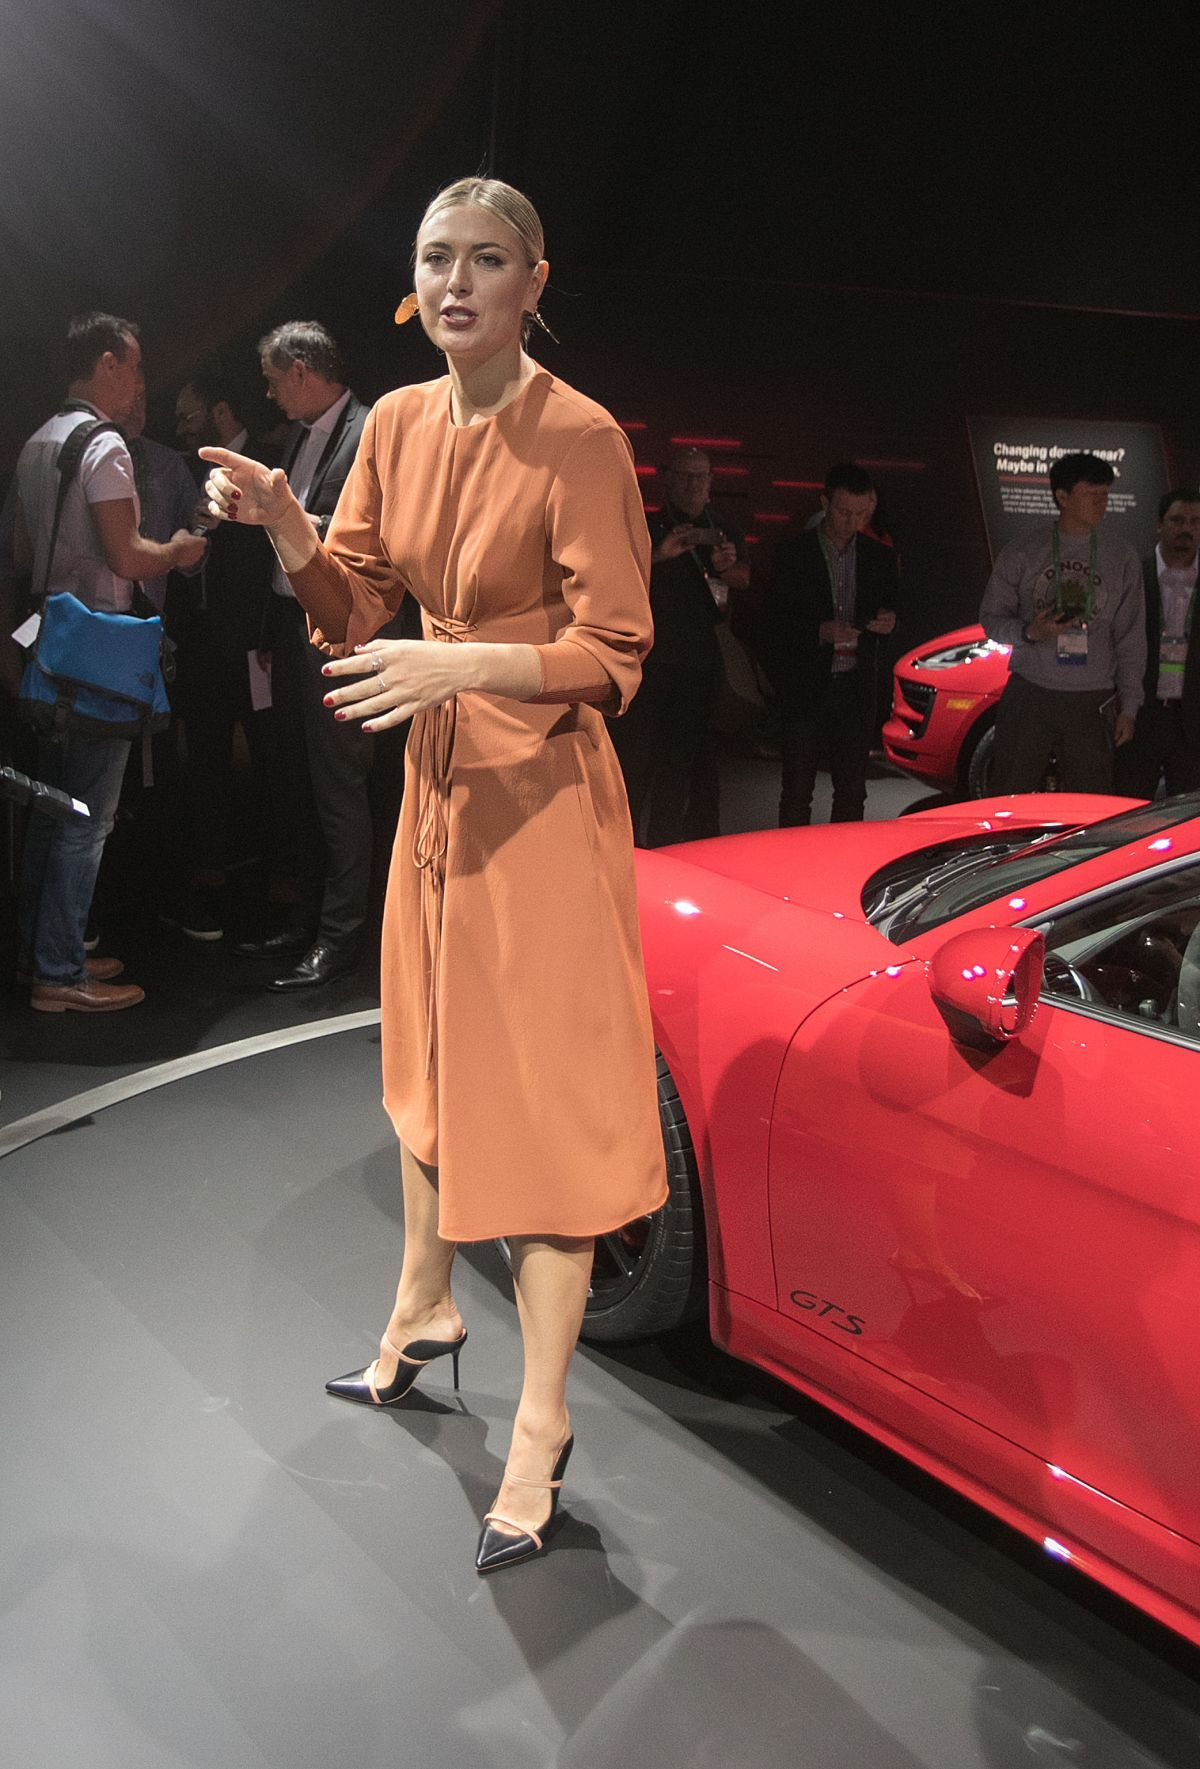 maria-sharapova-unveiling-of-2018-porsche-718-cayman-gts-at-los-angeles -auto-show-11-29-2017 f62a71956d7